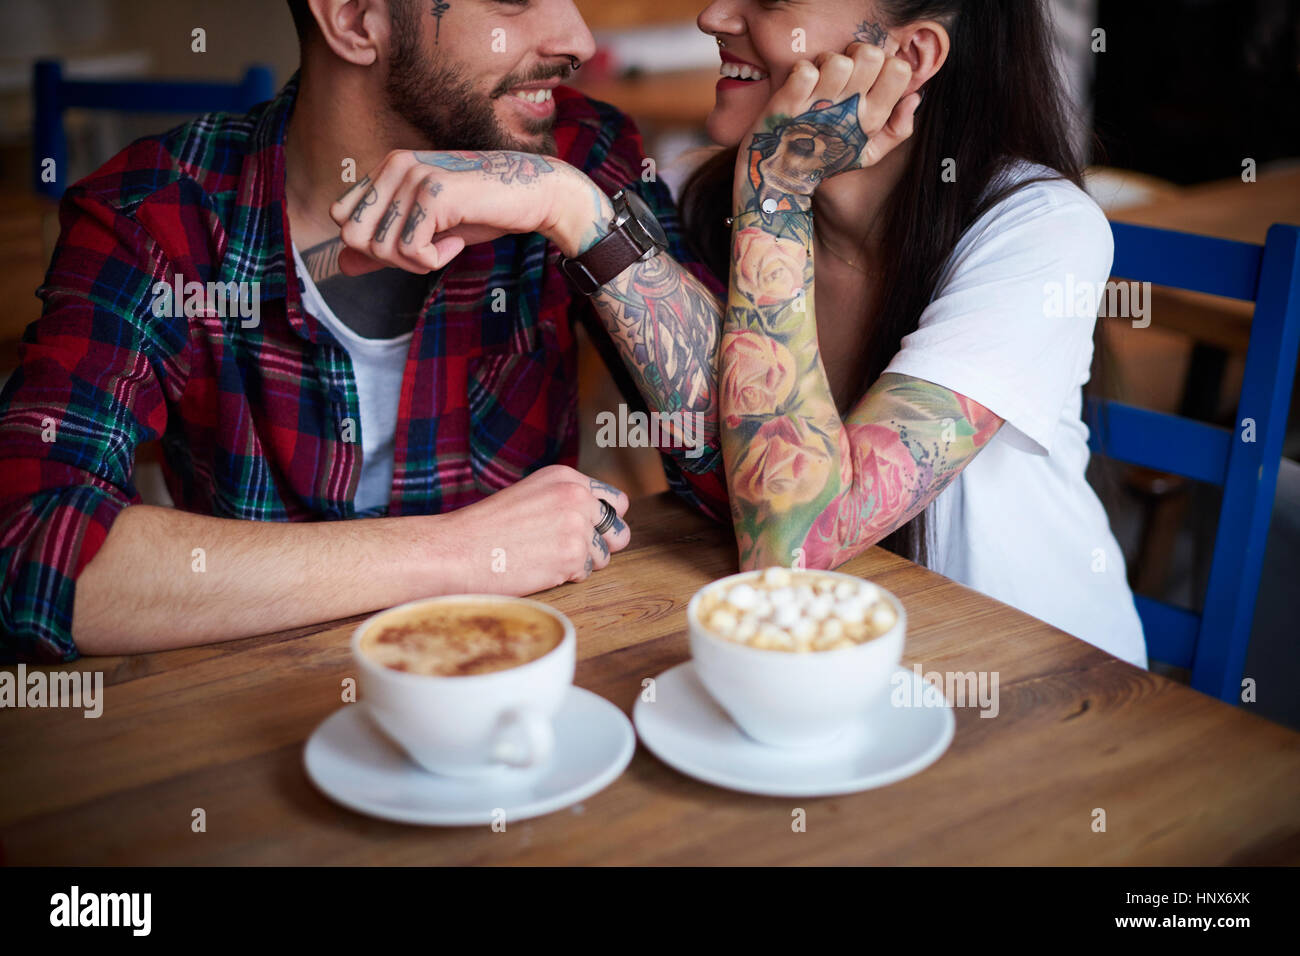 Couple dans un café face à face smiling Photo Stock